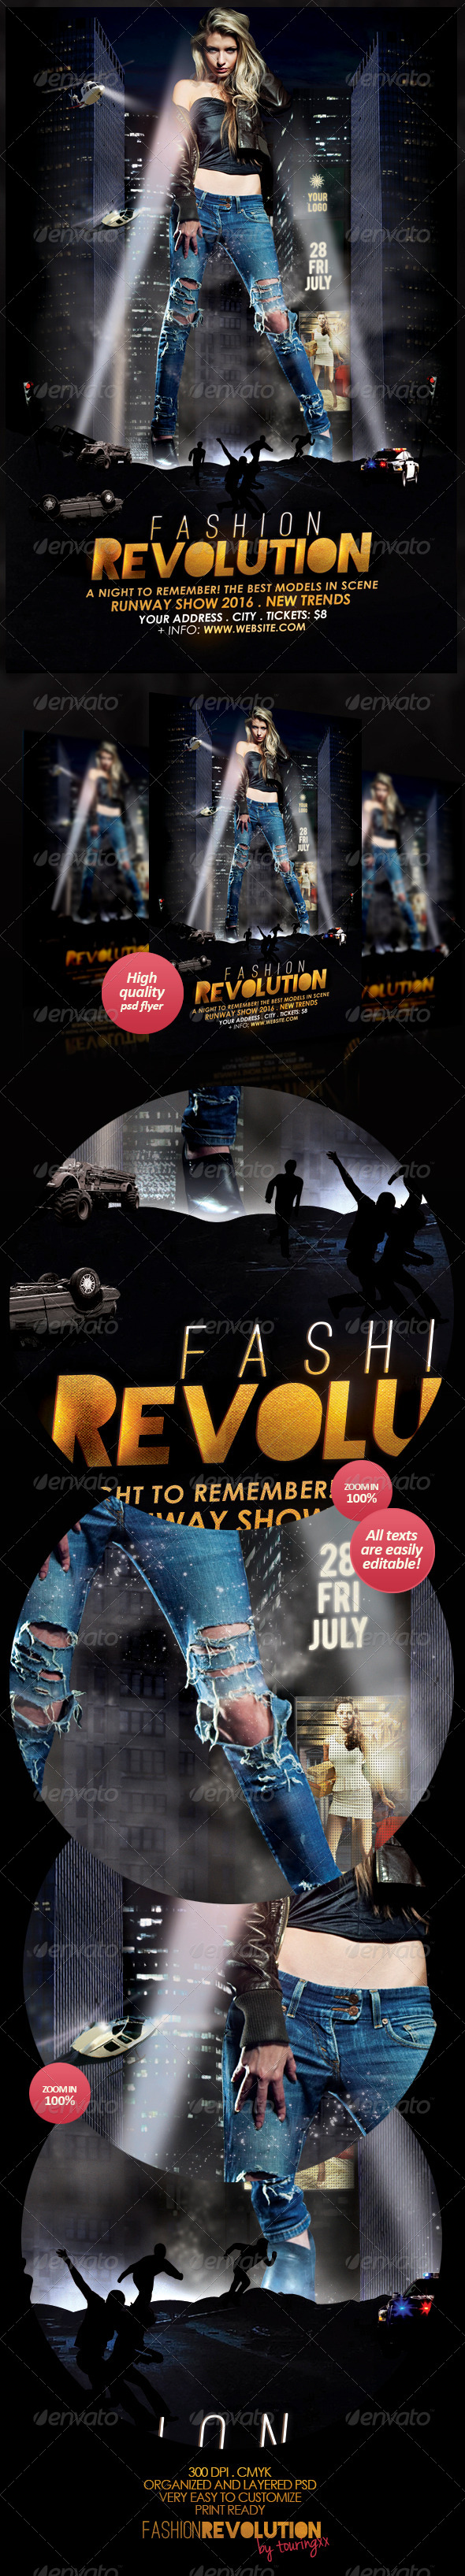 GraphicRiver Fashion Revolution Flyer Template 4858049